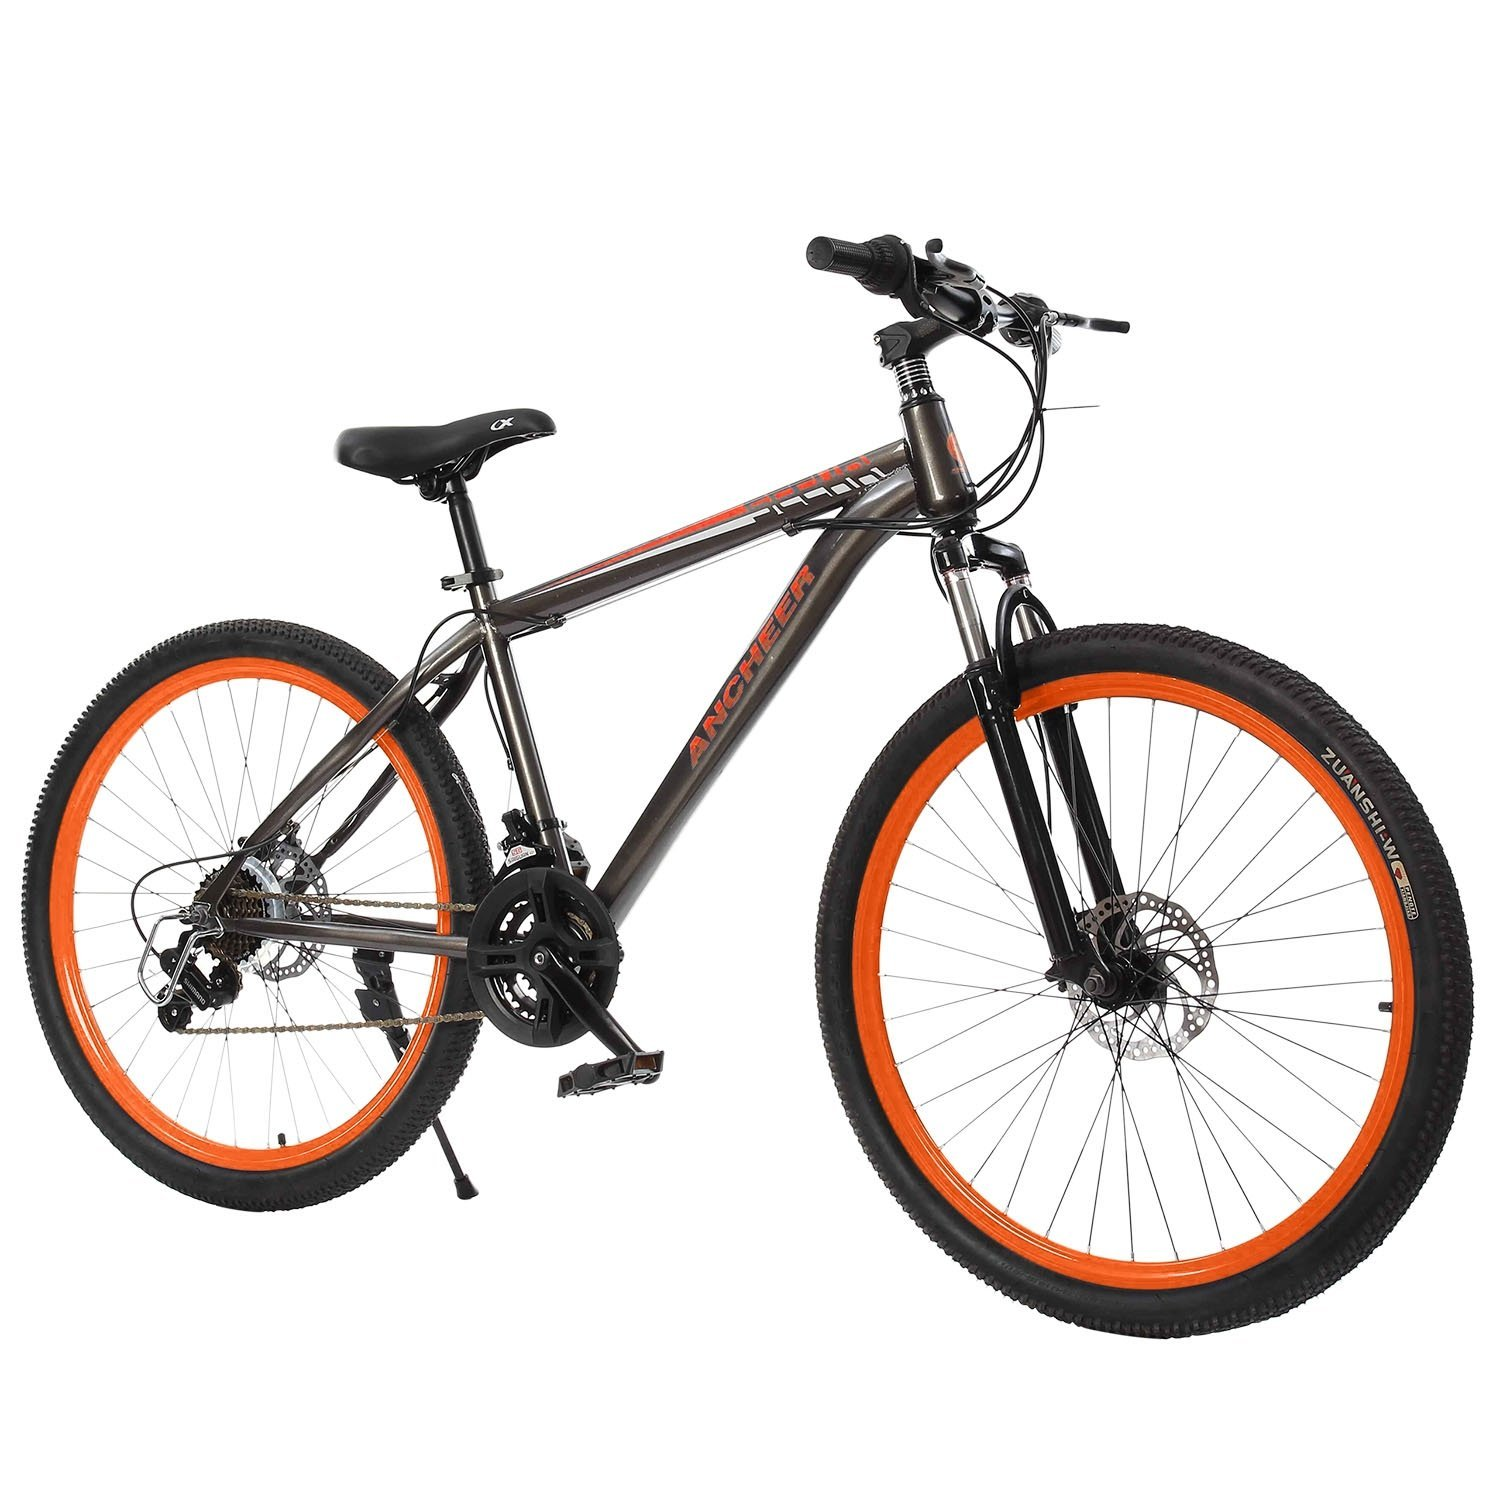 Best Mountain Bikes Under $500 - Ancheer 21-speed Hybrid Mountain Bike